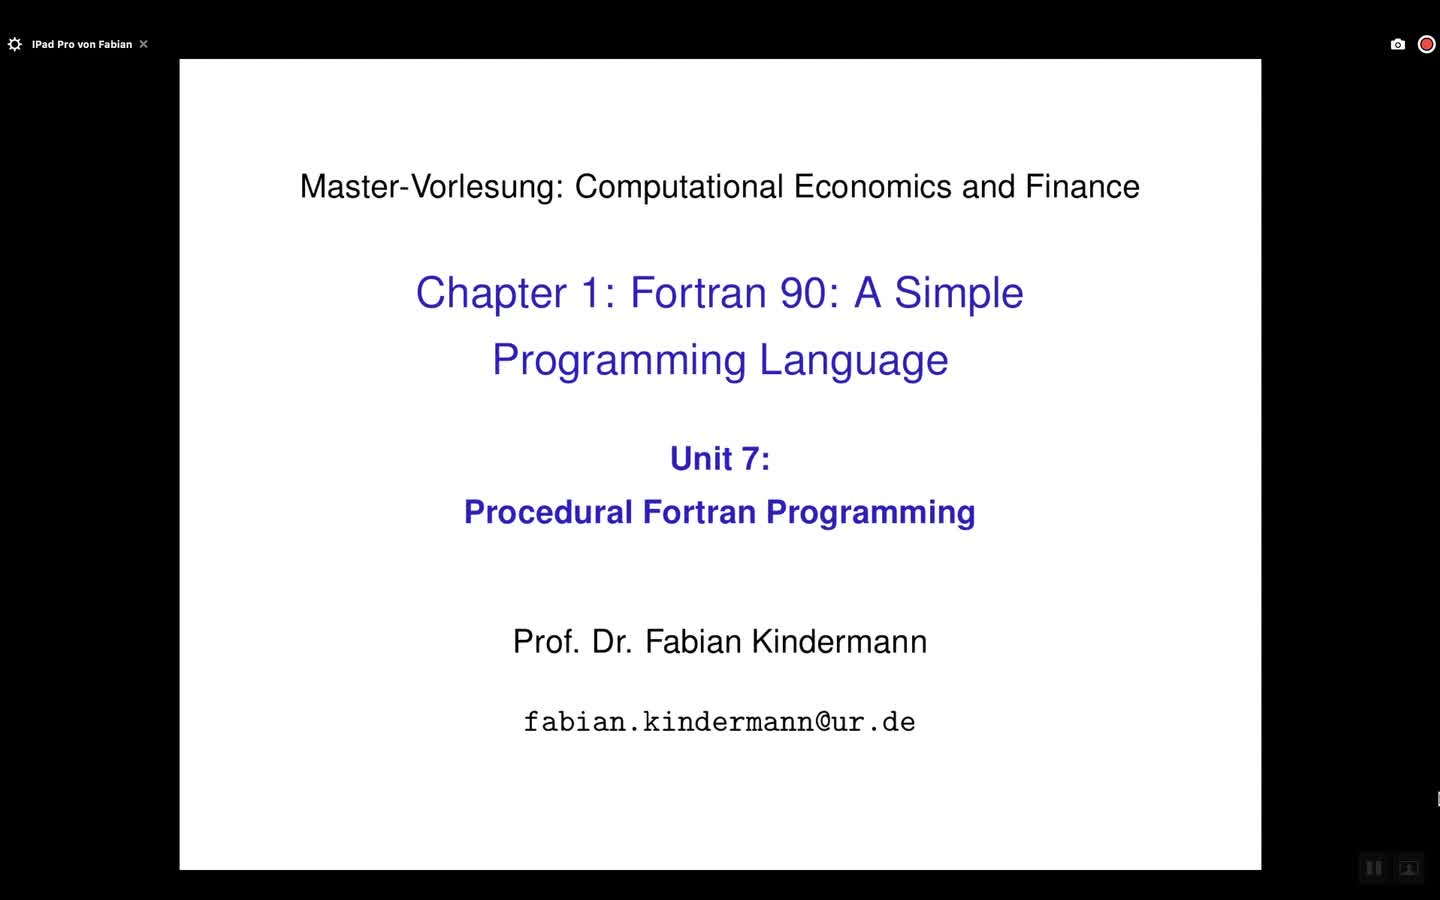 Chapter 1 - Unit 7 - Procedural Fortran Programming